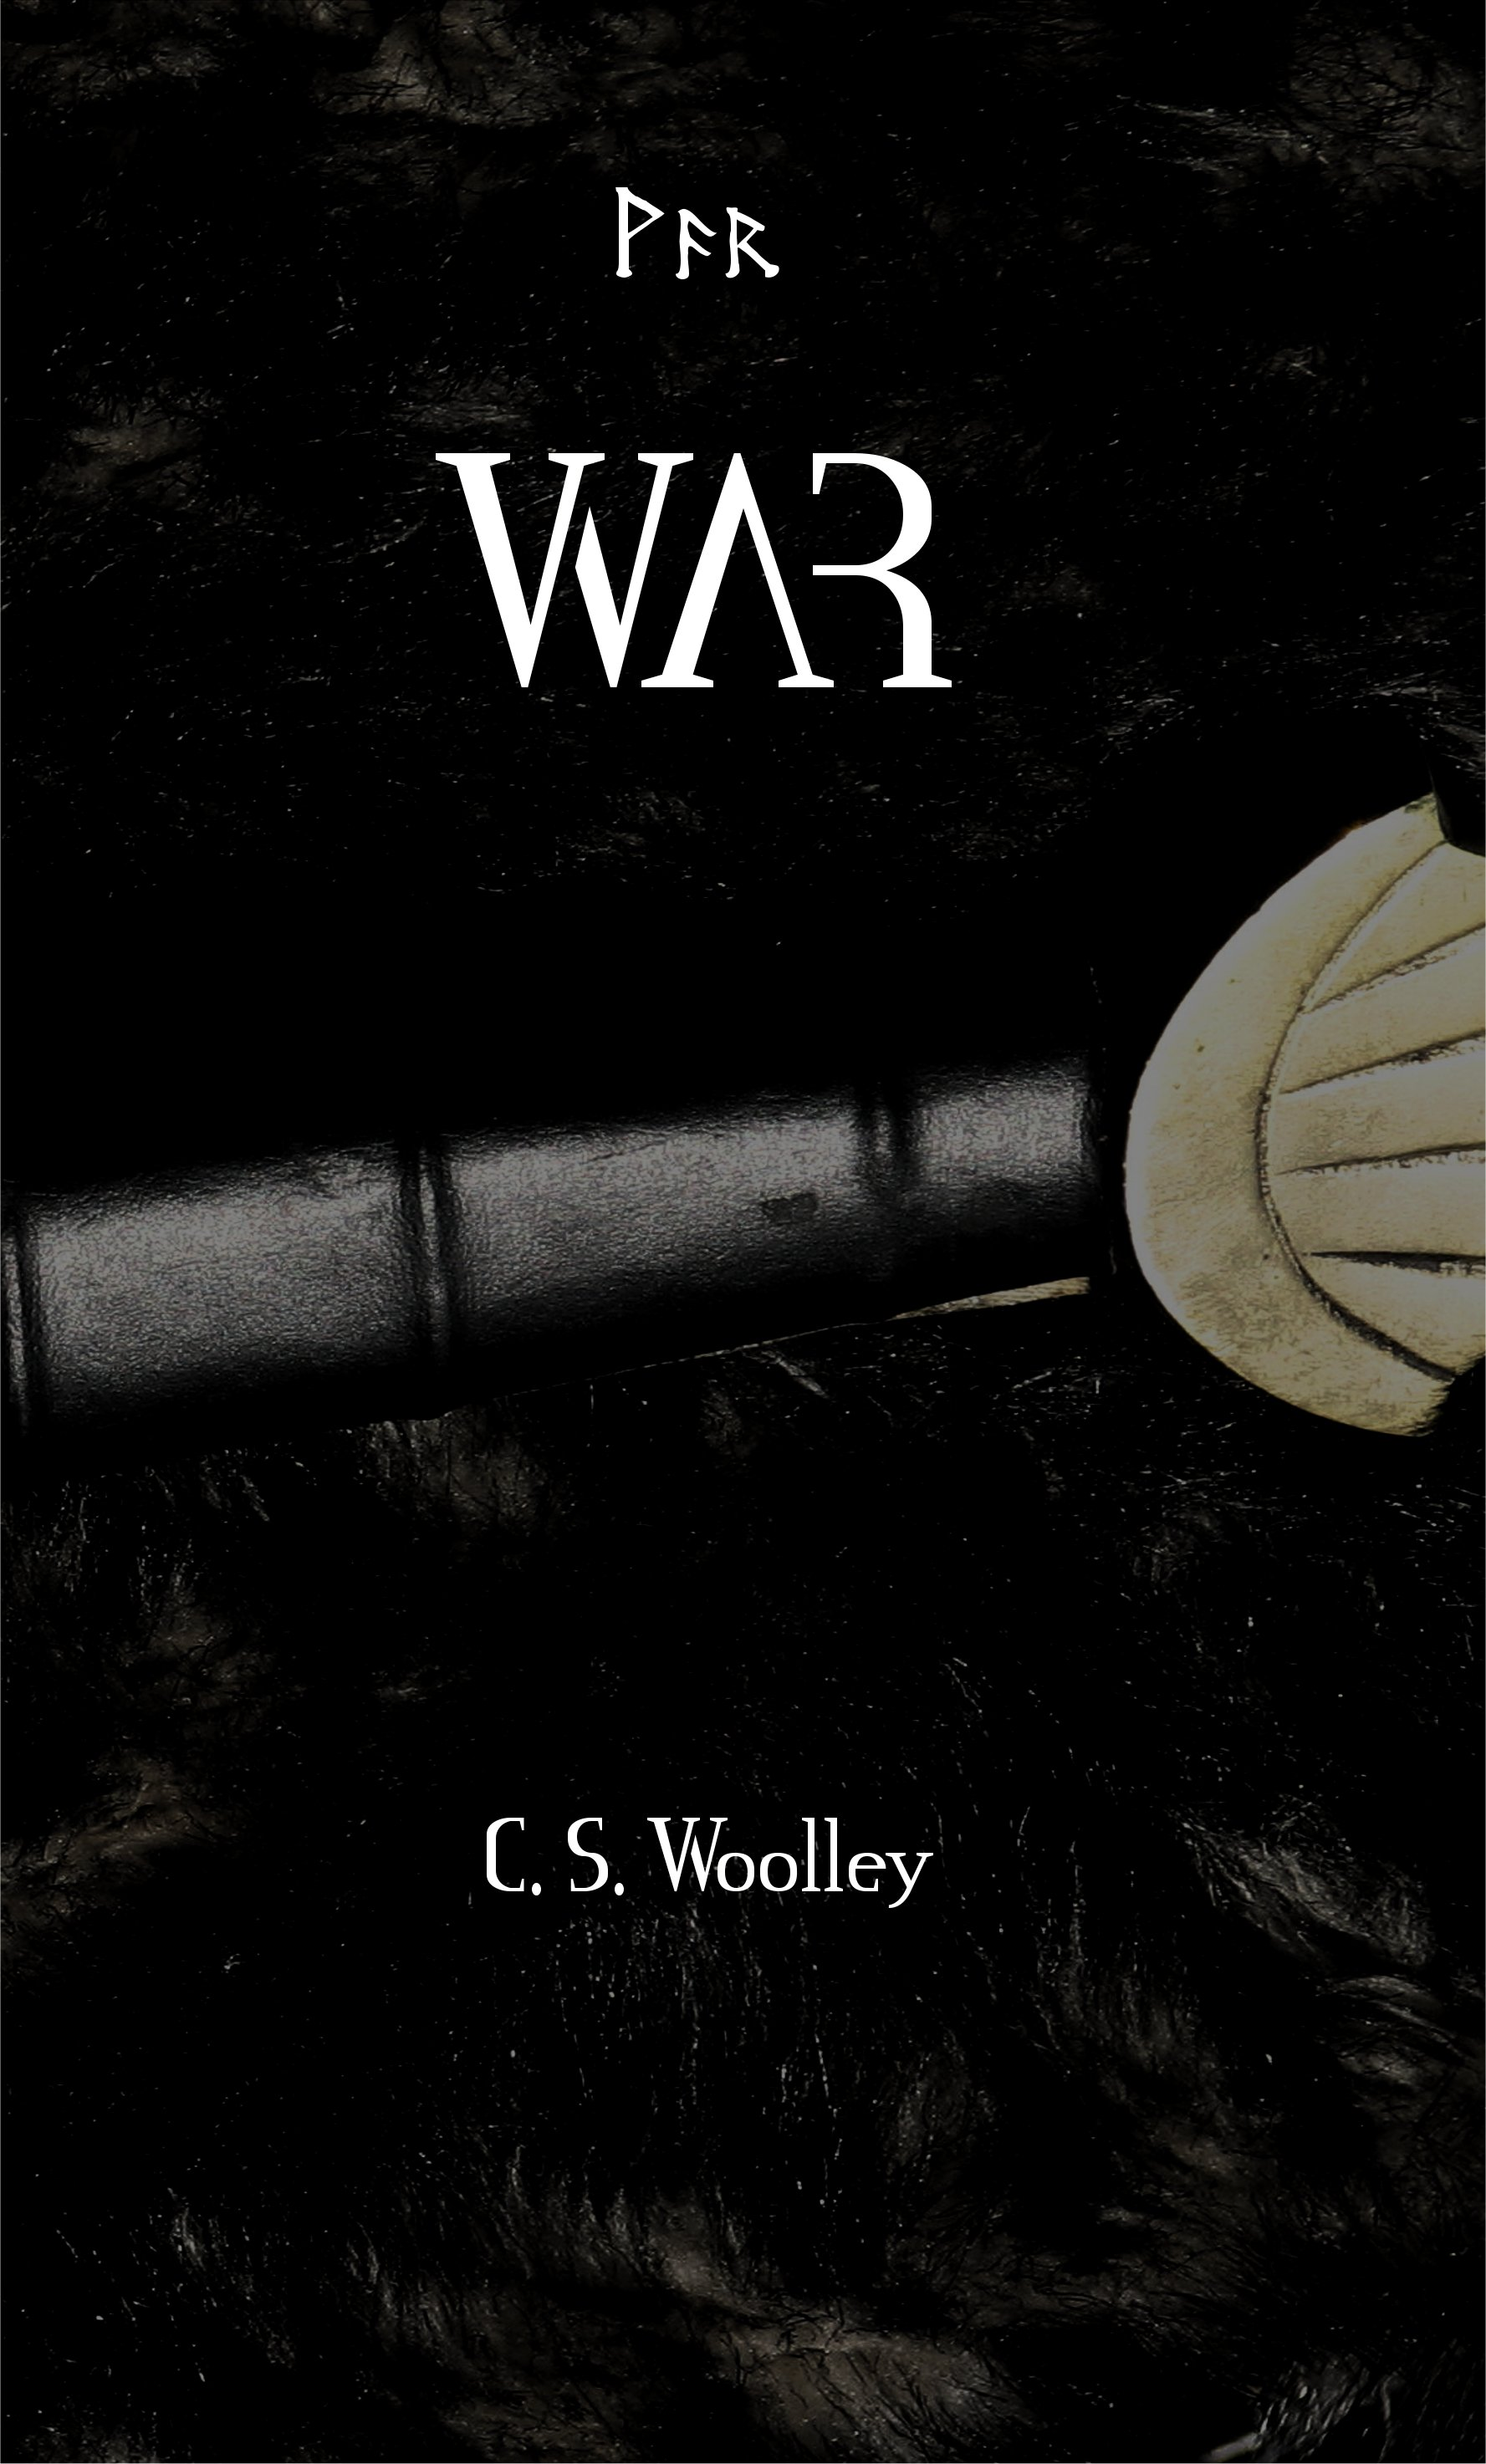 Order The Paperback Of Wifrith Book 3 In The Children Of Ribe Series By  Cs Woolley For Just £599 In Paperback With Free Uk Delivery